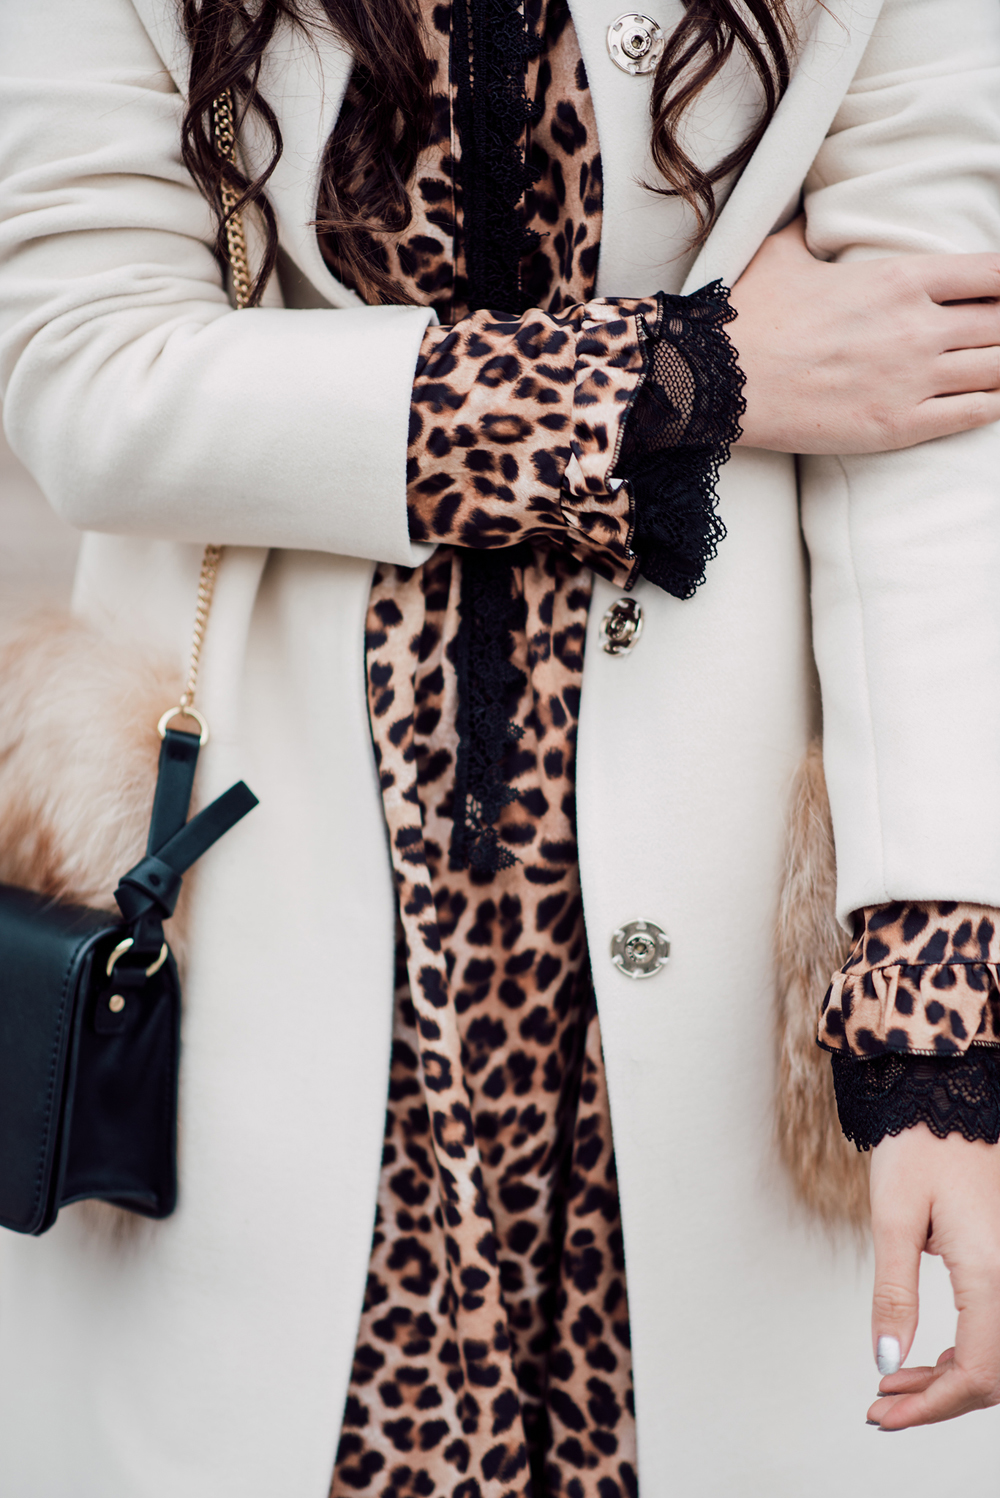 eva-ahacevcic_love-eva_terminal3_ootd_leopard-print_dress_fashion-blogger-4